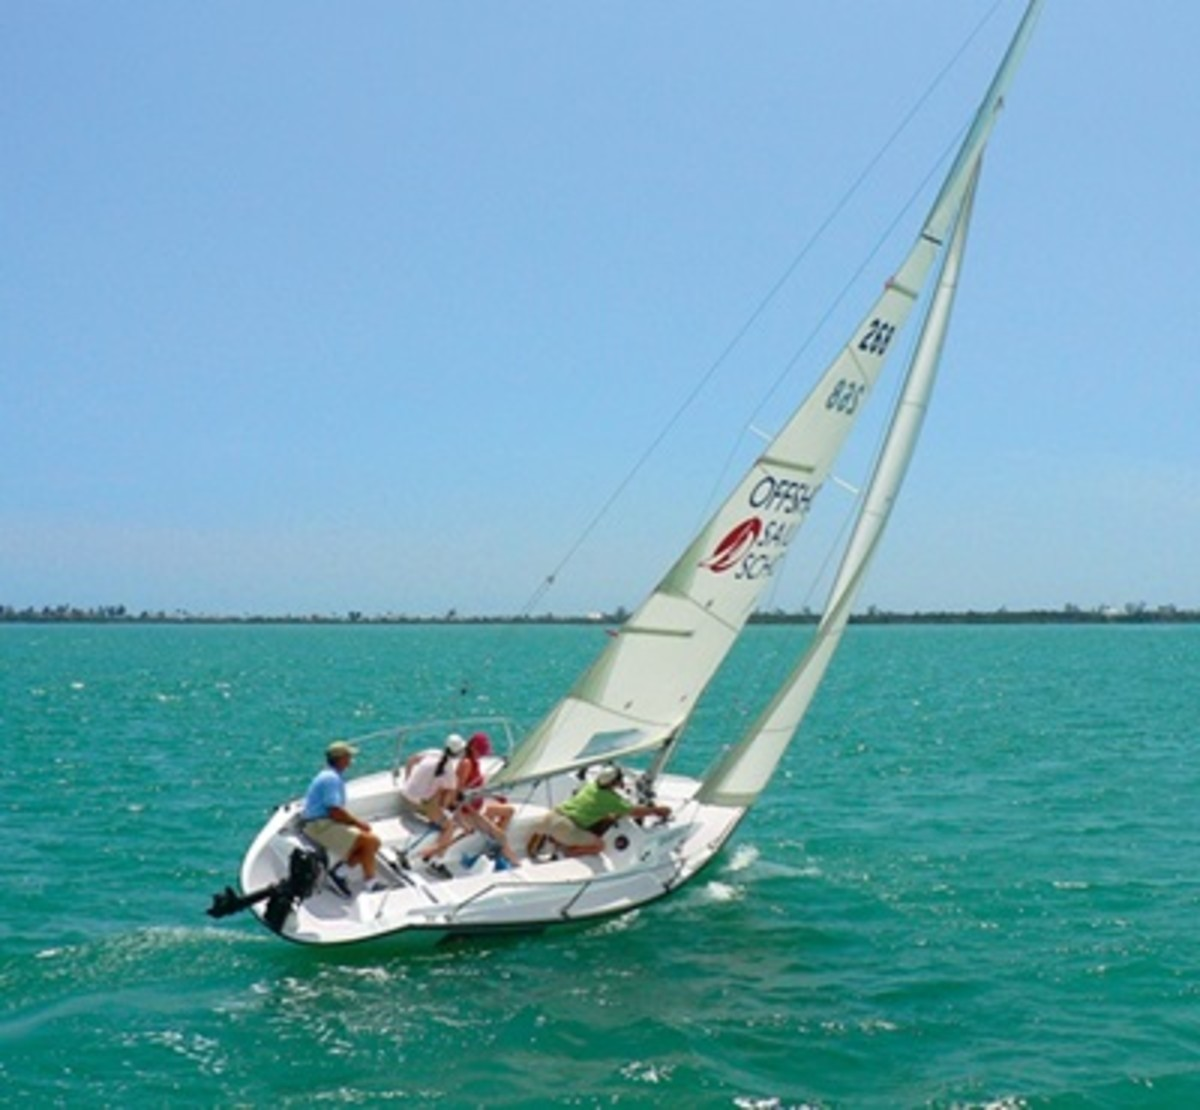 Freedom Boat Club members will receive a 40 percent savings on Offshore Sailing's Learn to Sail certification course tuition.